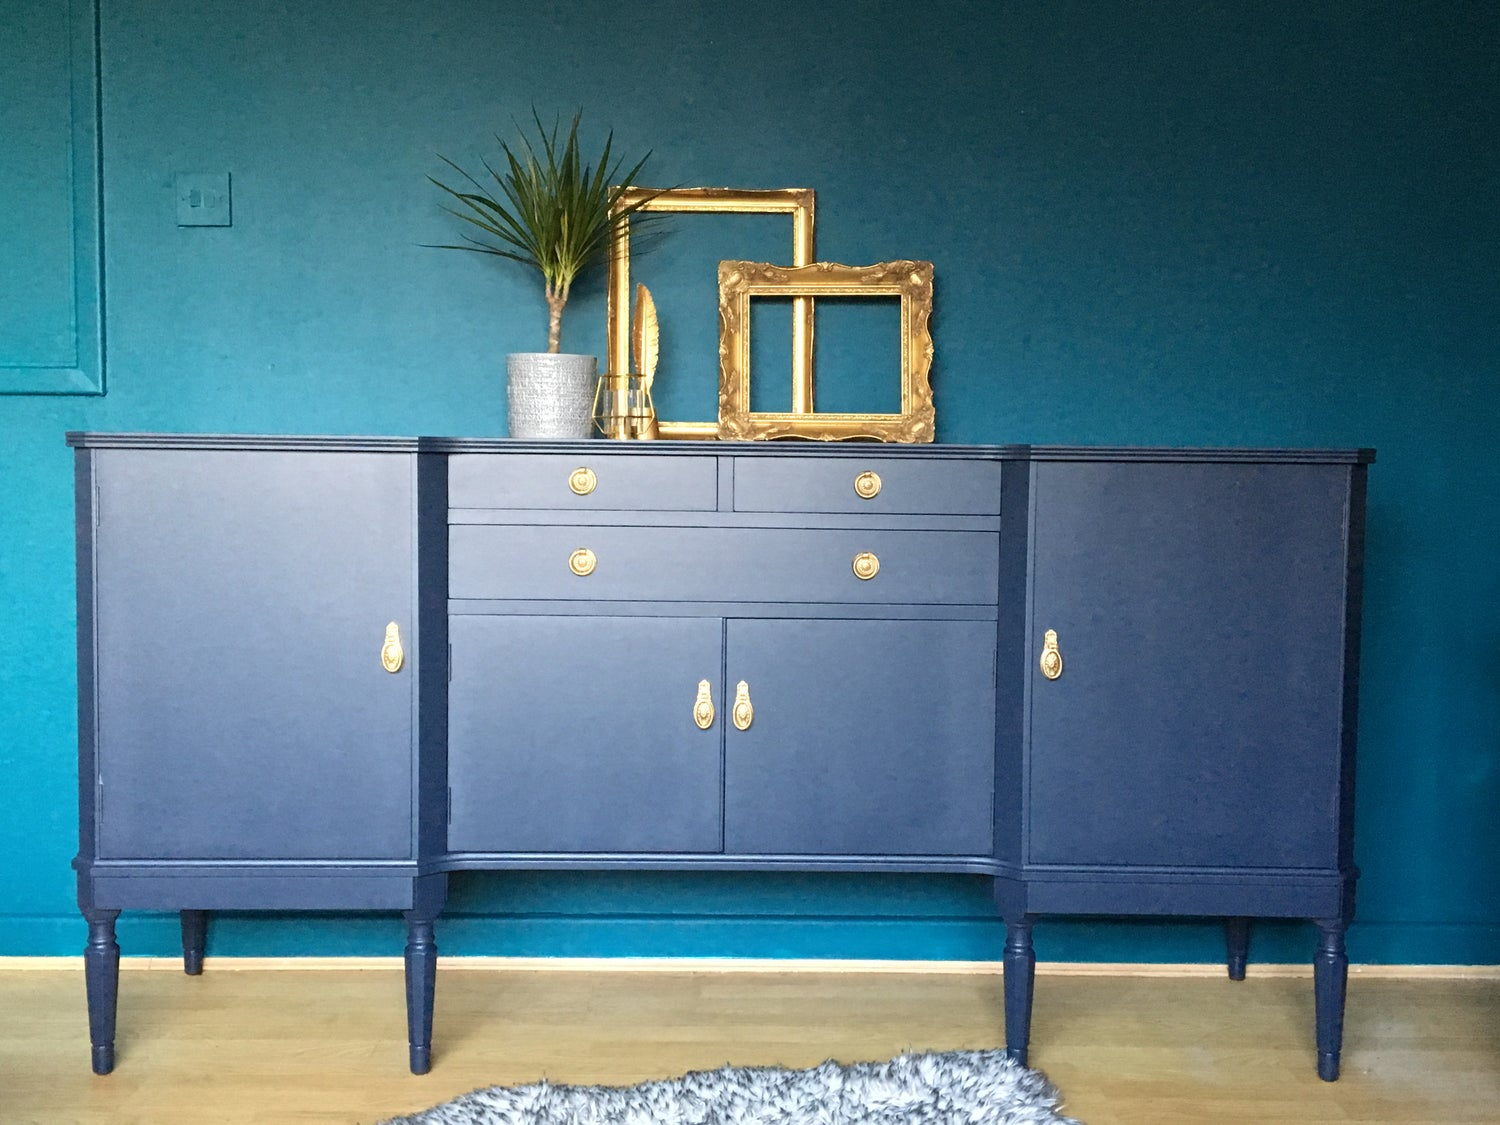 Image of Dark blue wooden sideboard